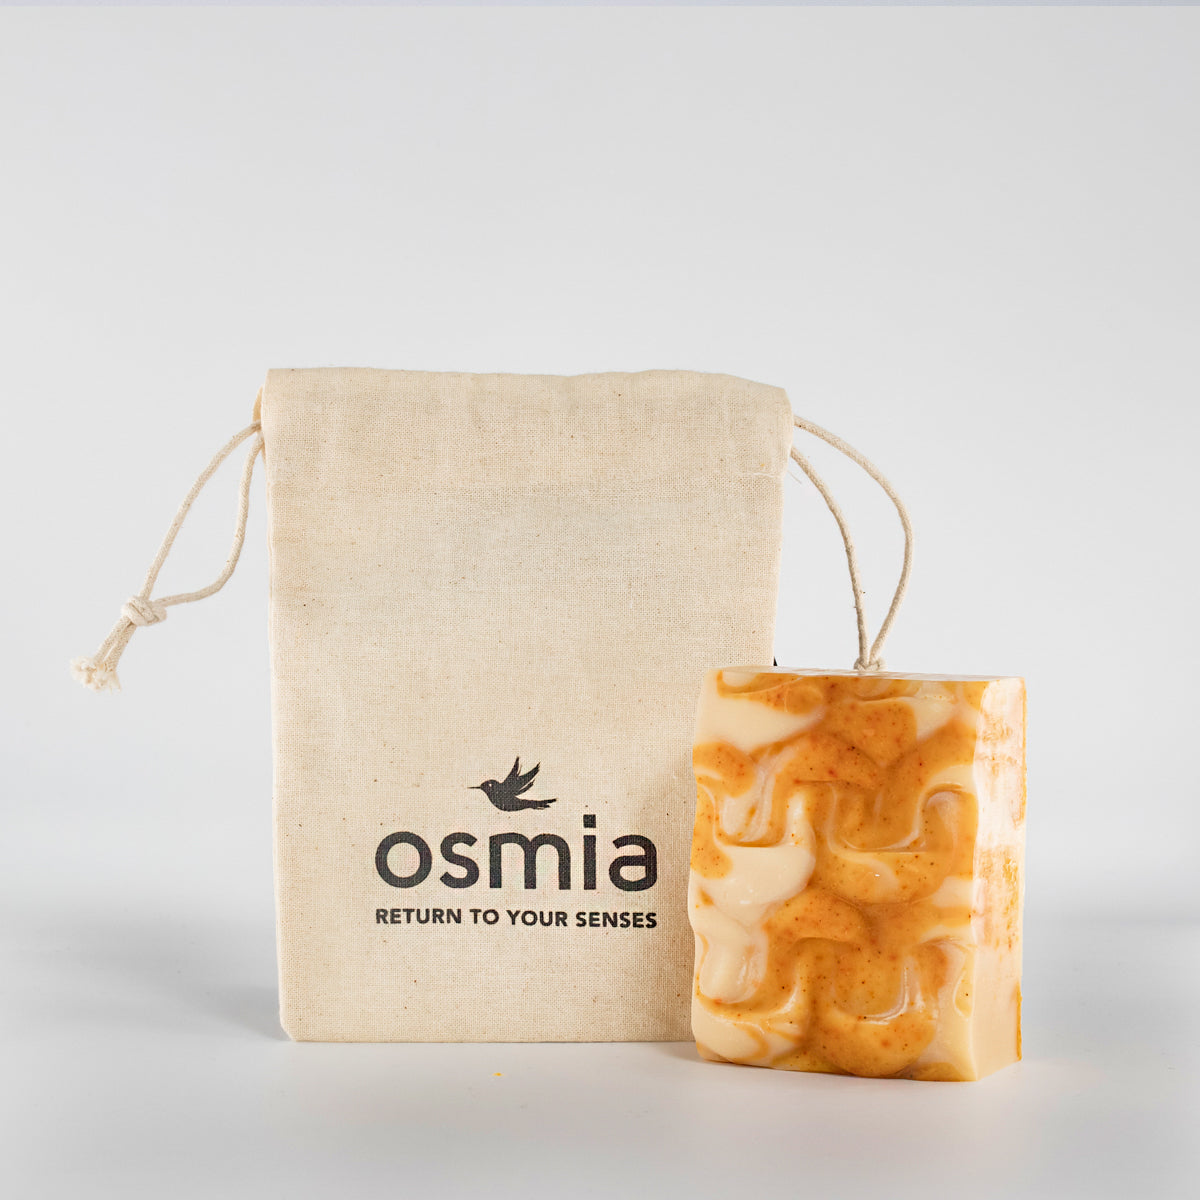 Organic Soap Travel Bag